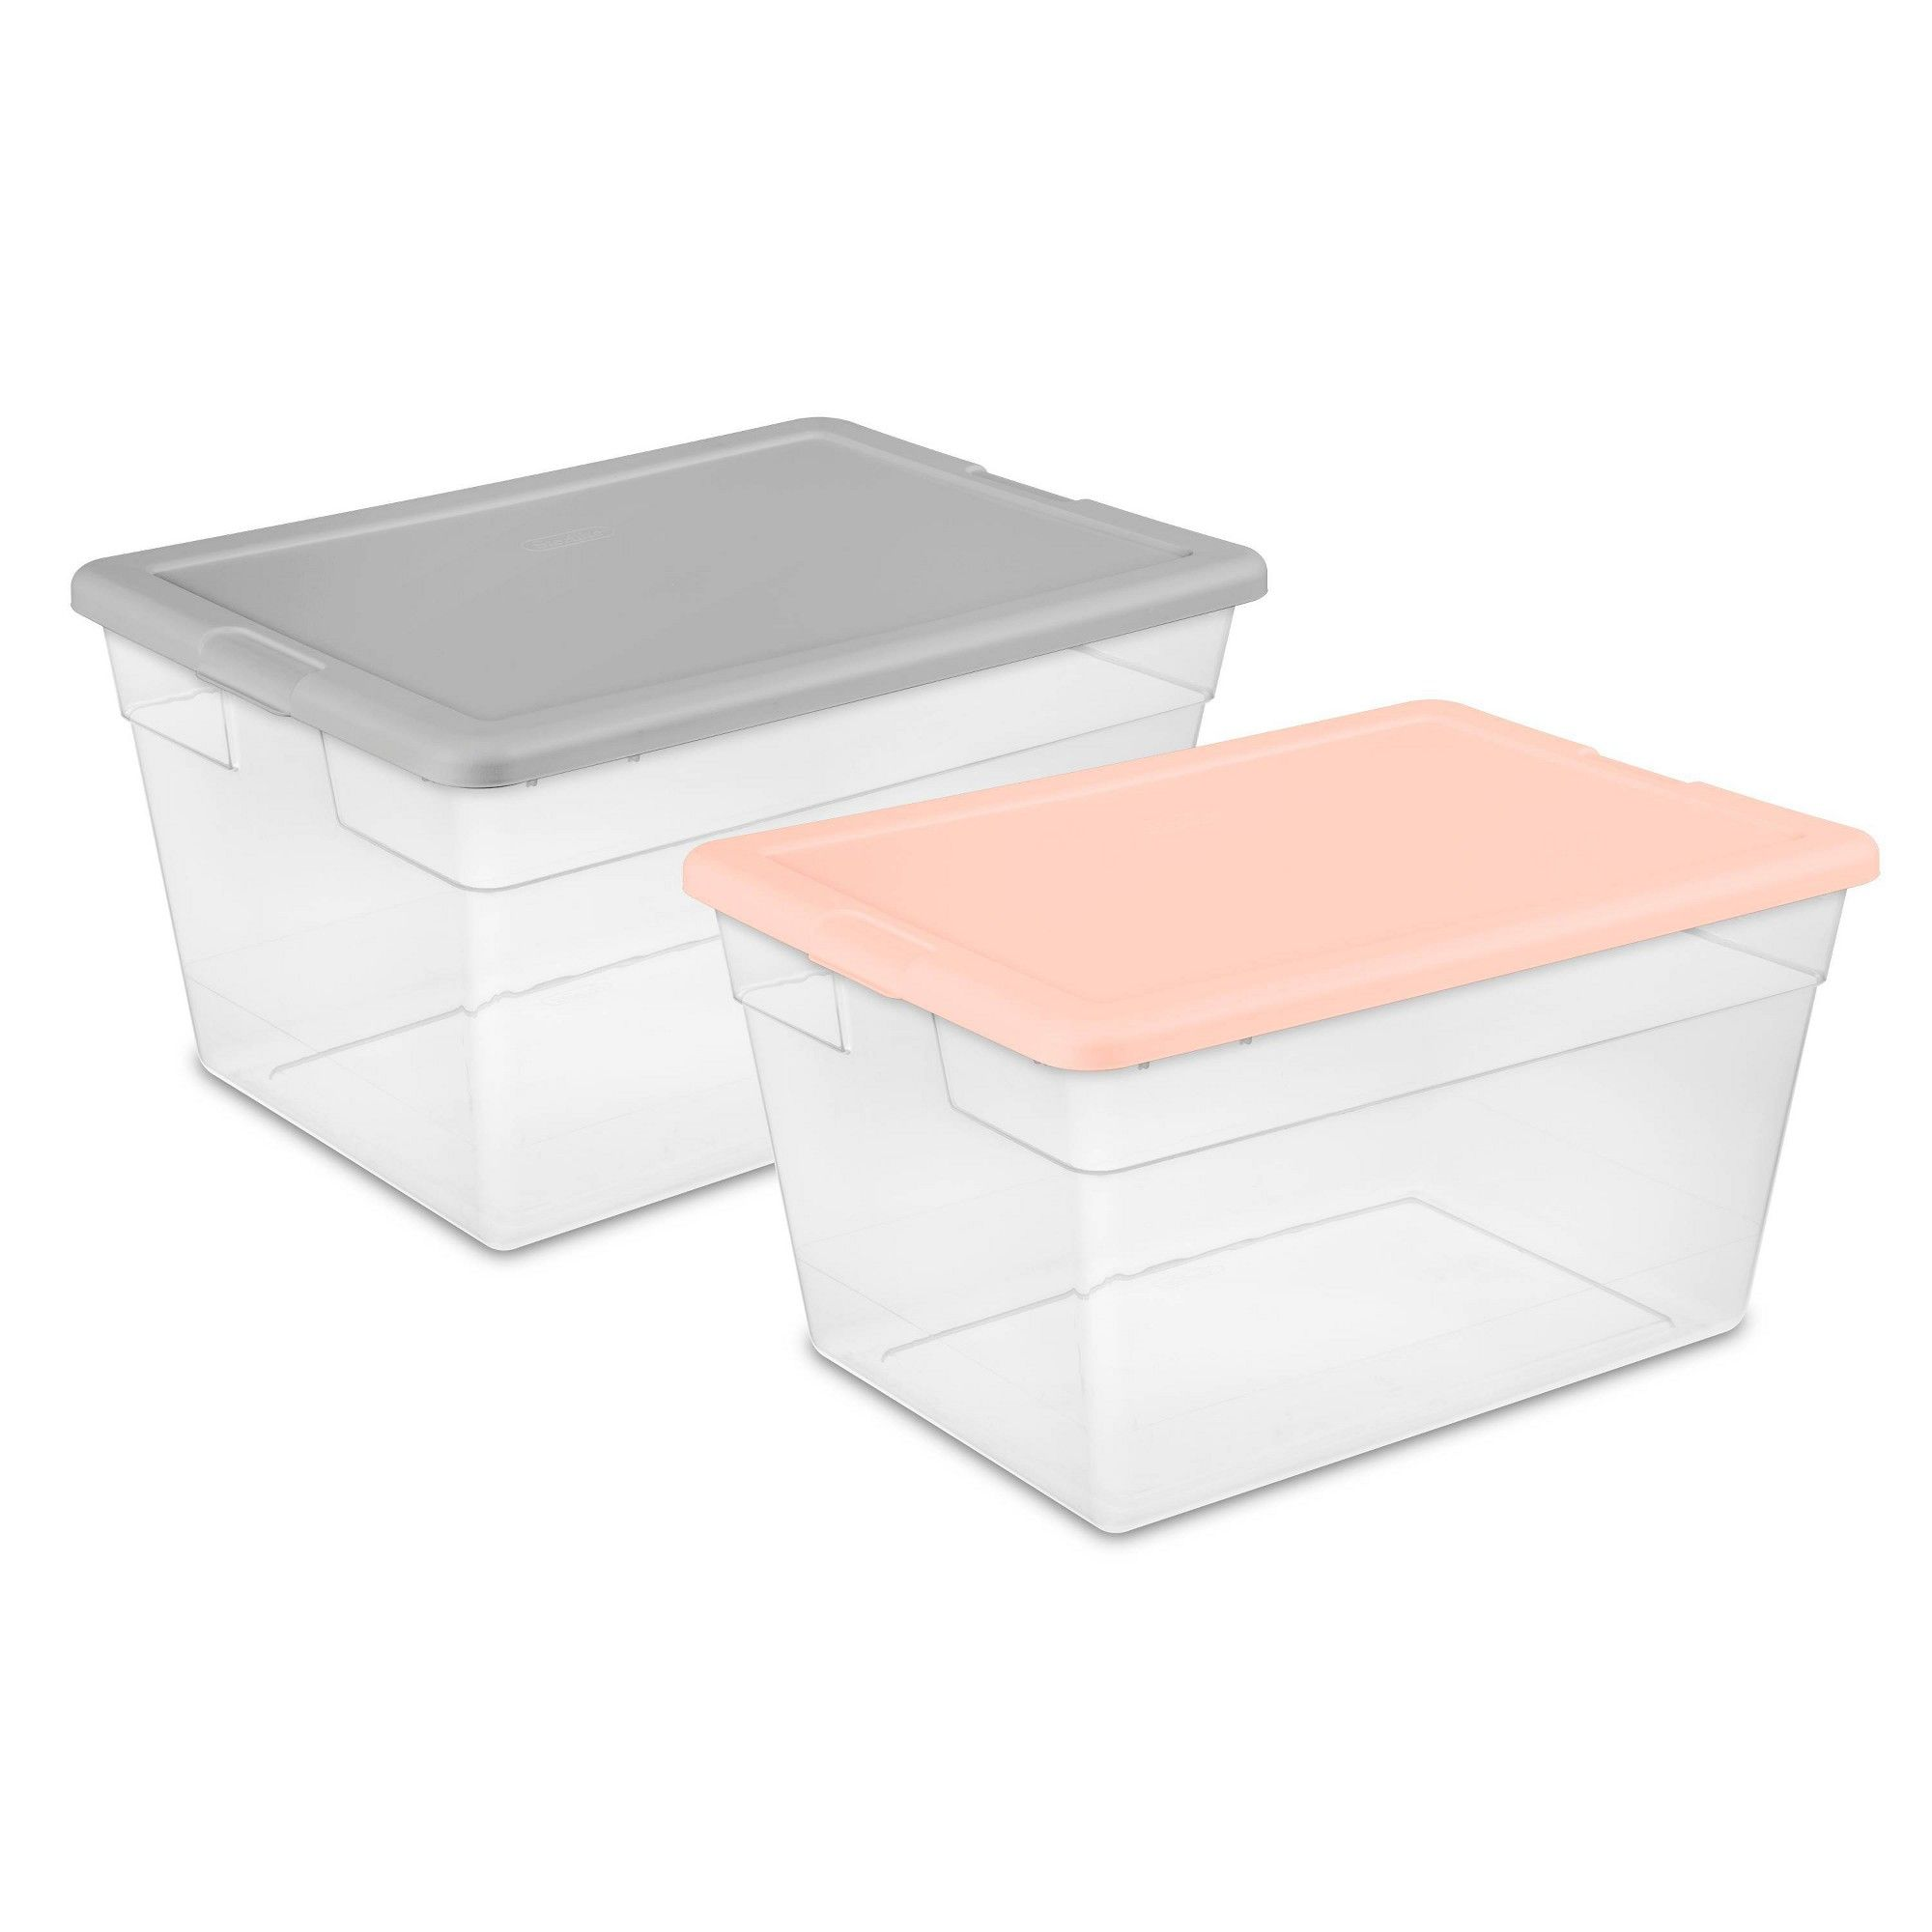 Swell 56Qt Clear Storage Bin With Feather Peach Or Gray Assorted Uwap Interior Chair Design Uwaporg